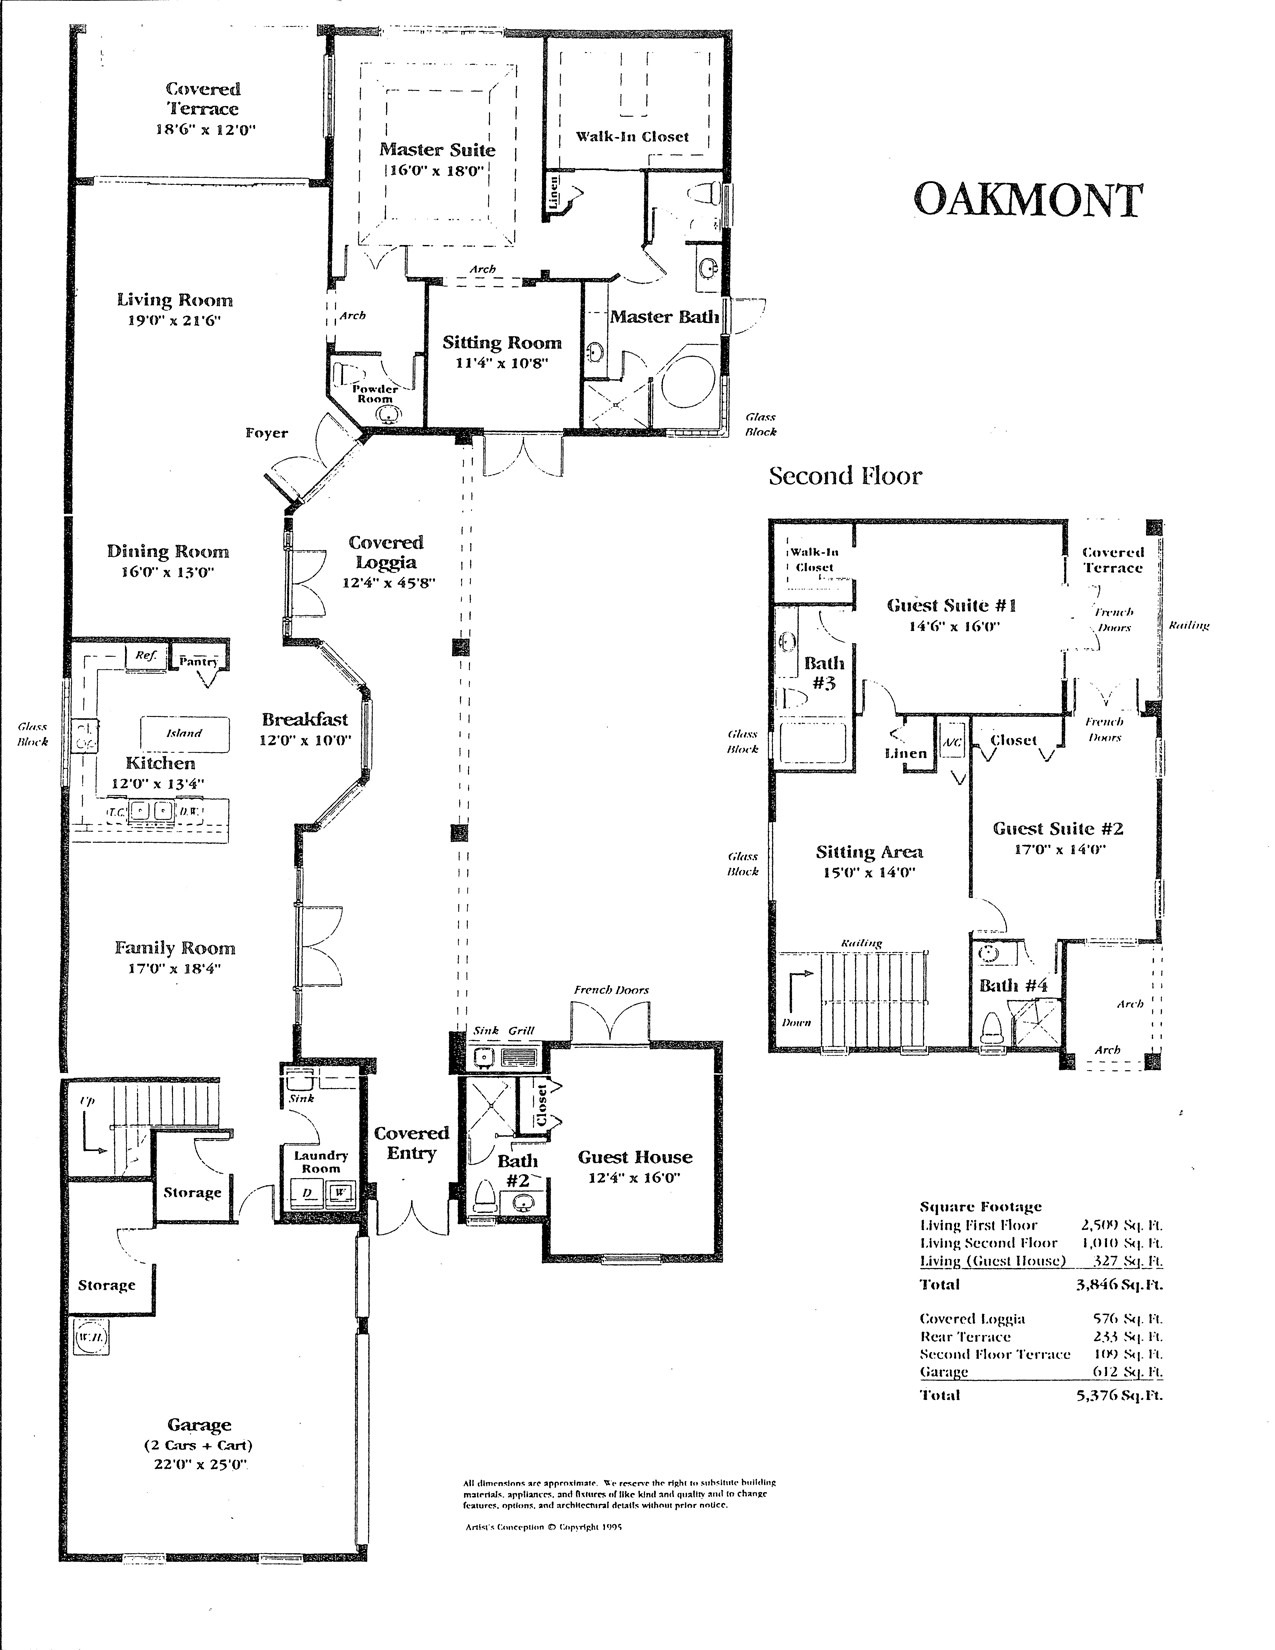 Pool House Guest House Plans Beautiful Garage Guest House Plans Beautiful Pool Designs Bedroom Home